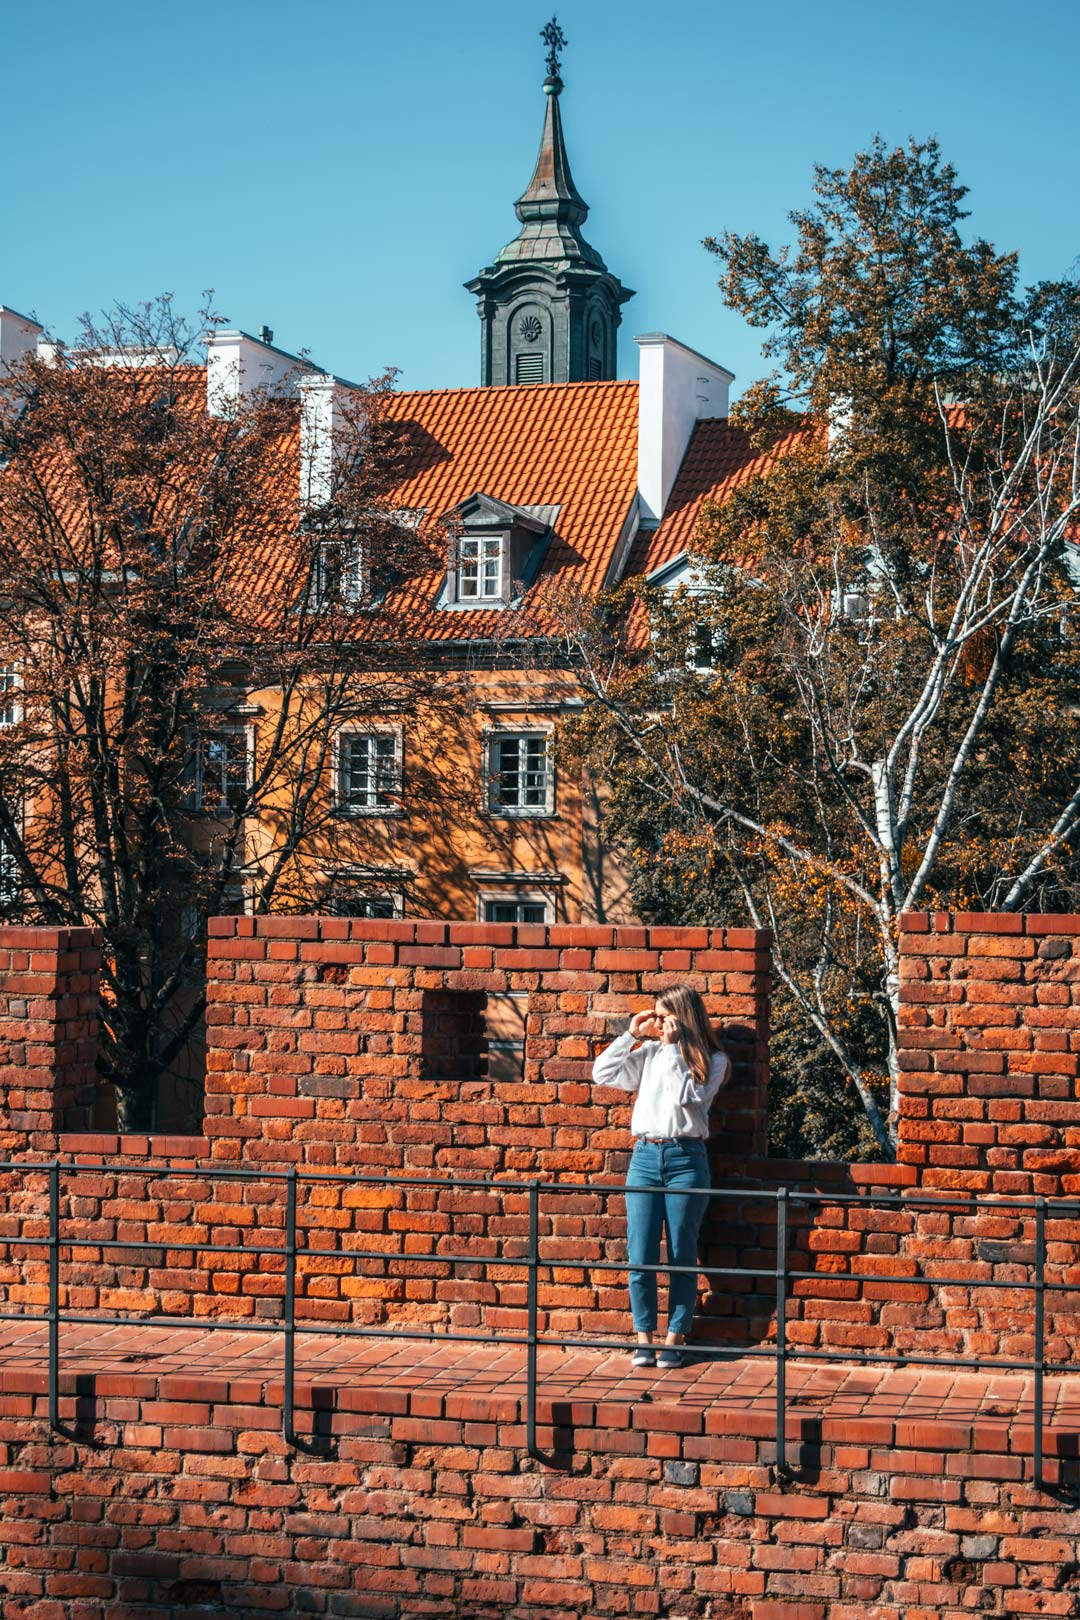 girl-on-the-wall-Warsaw-Poland-travelshare.gr-φωτογραφία στη Βαρσοβία